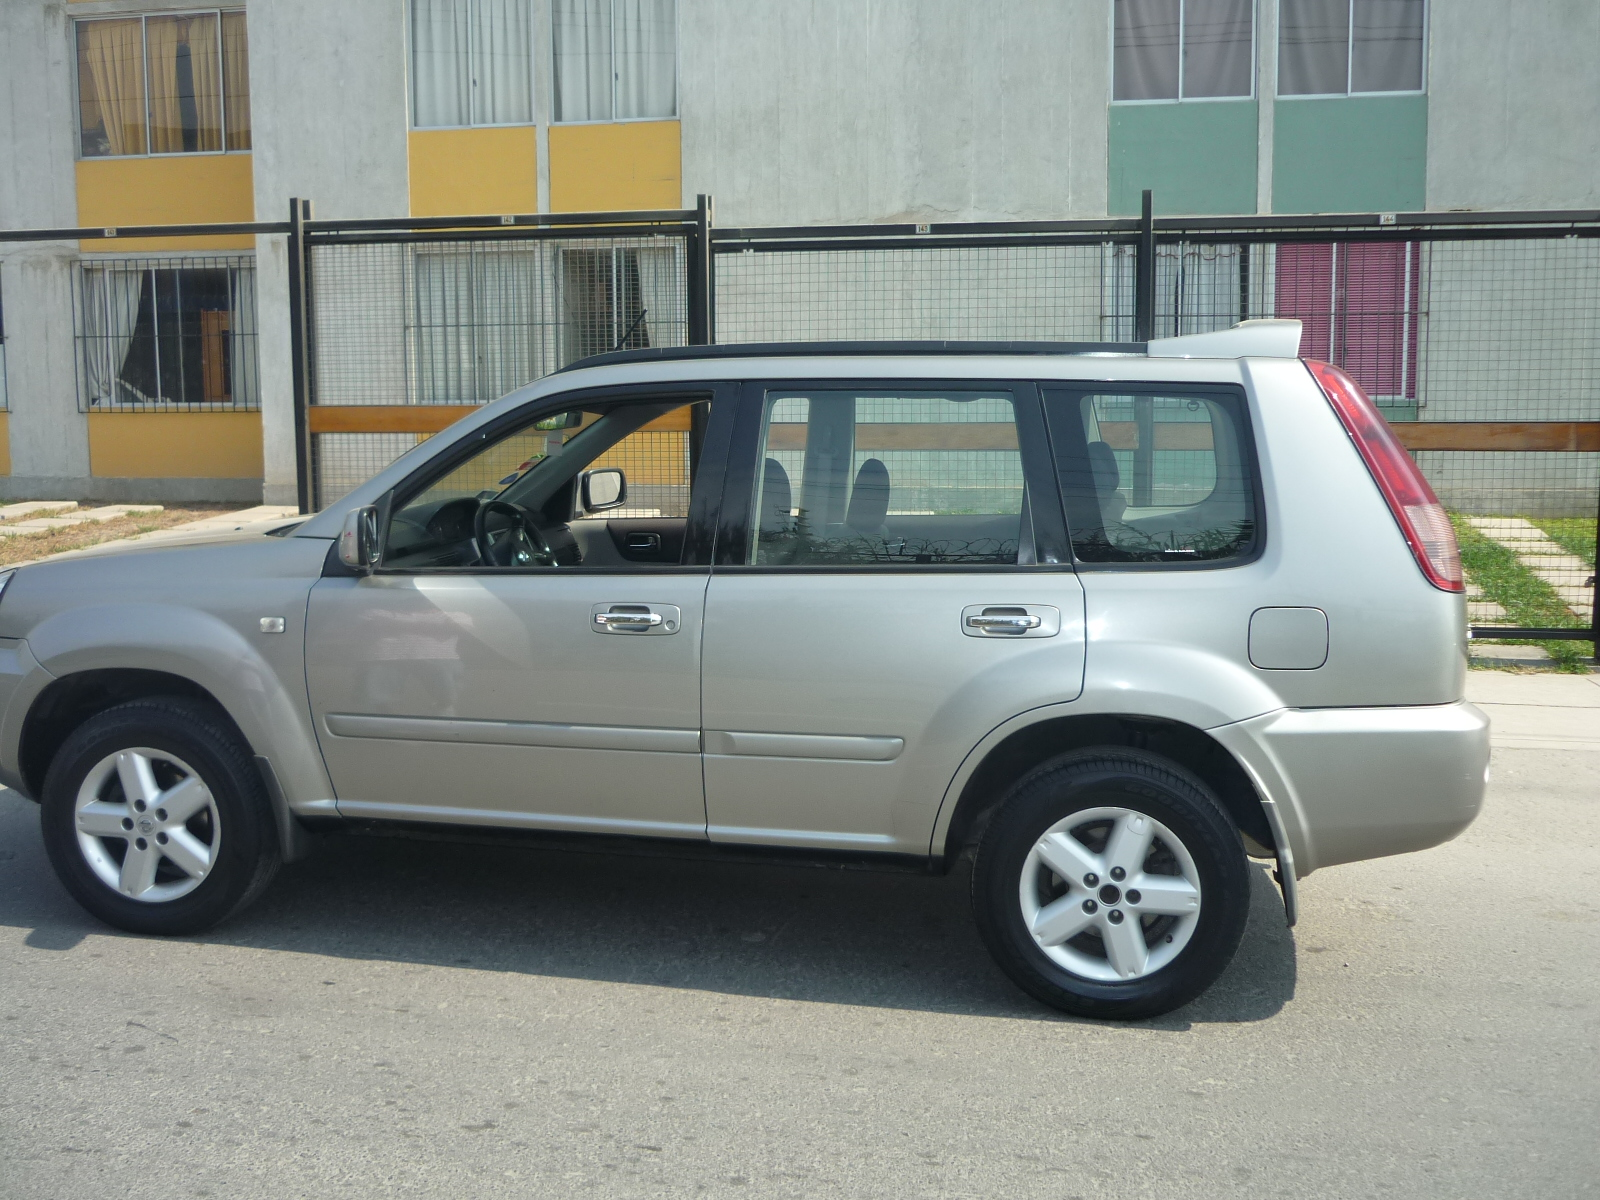 Nissan X Trail 2007 >> 2004 Nissan X-trail – pictures, information and specs - Auto-Database.com